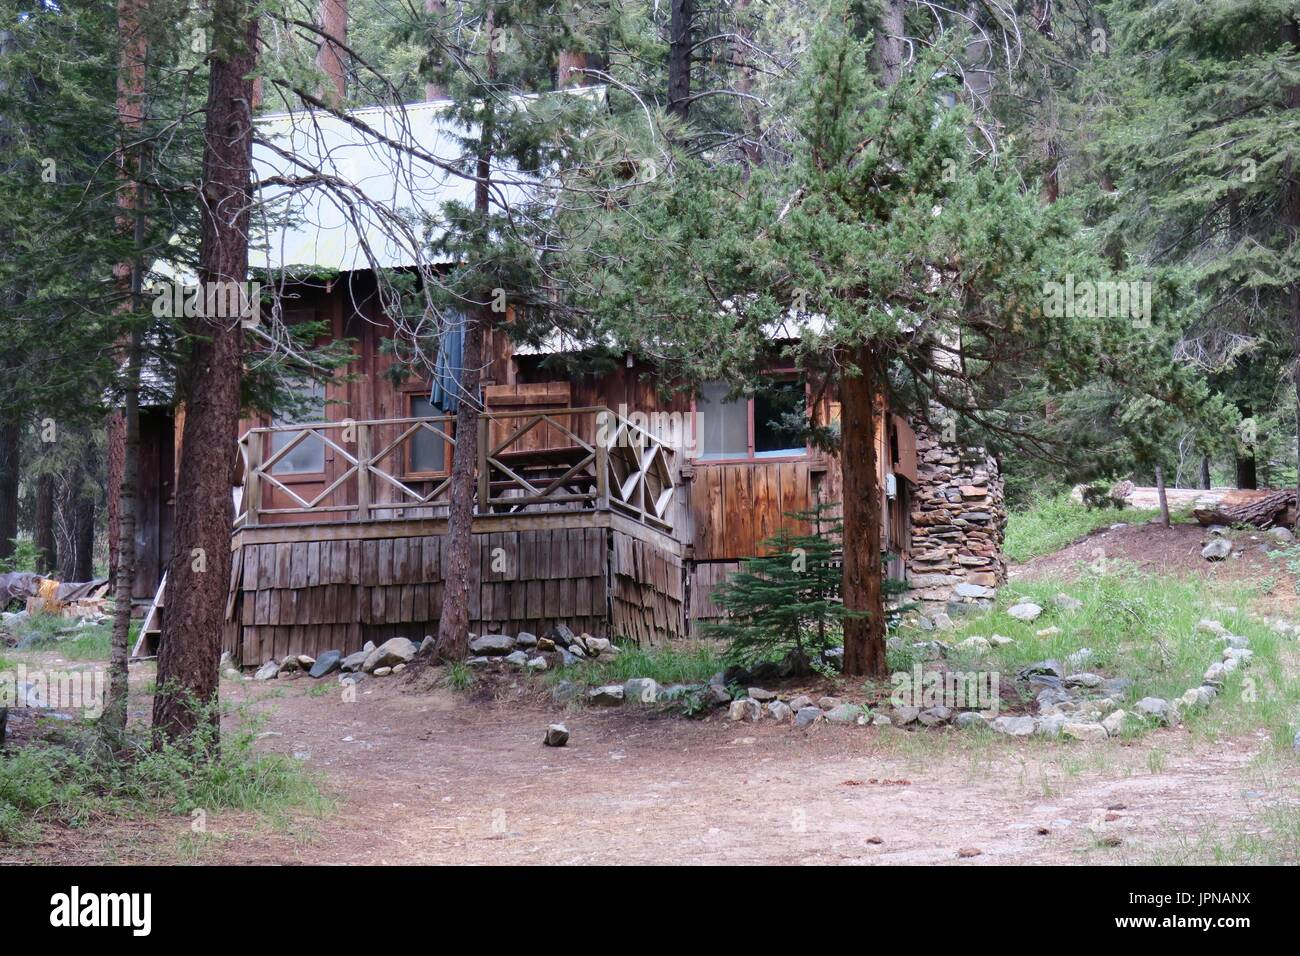 ca national getaway together forest park the in see dsc journey you our here sequoia cabins serenity weekend do